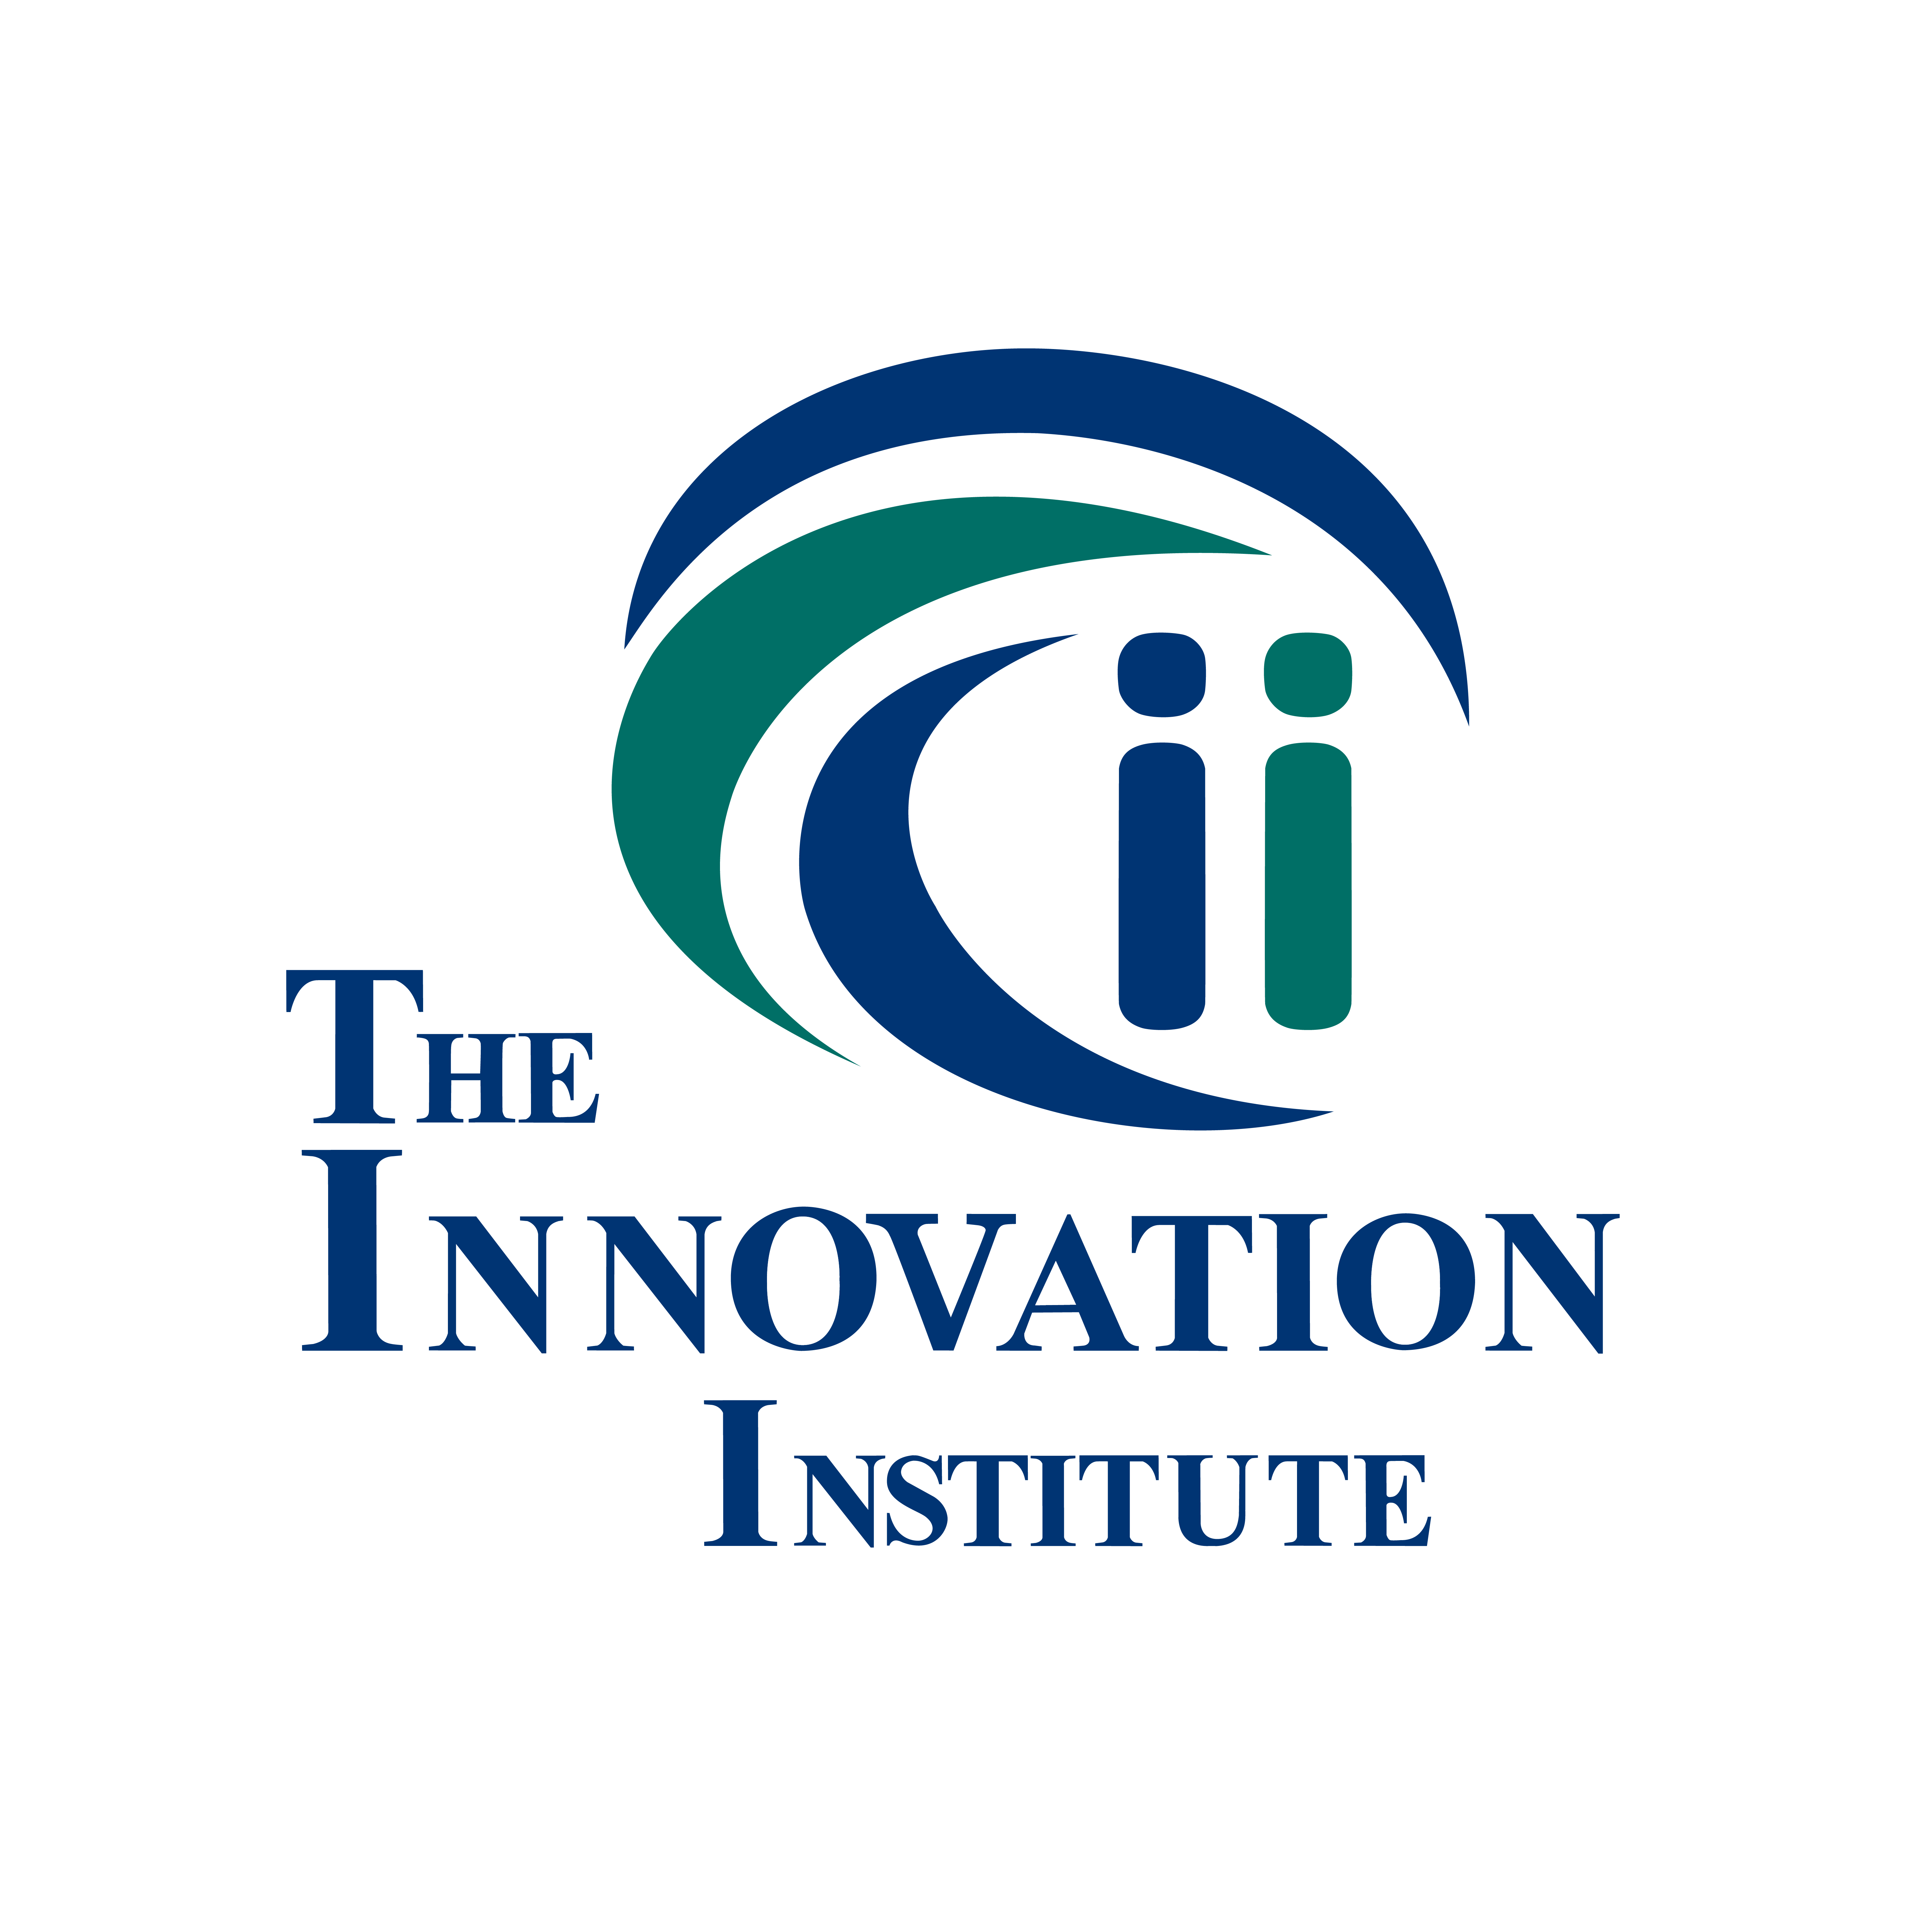 The Innovation Institute - Wikipedia